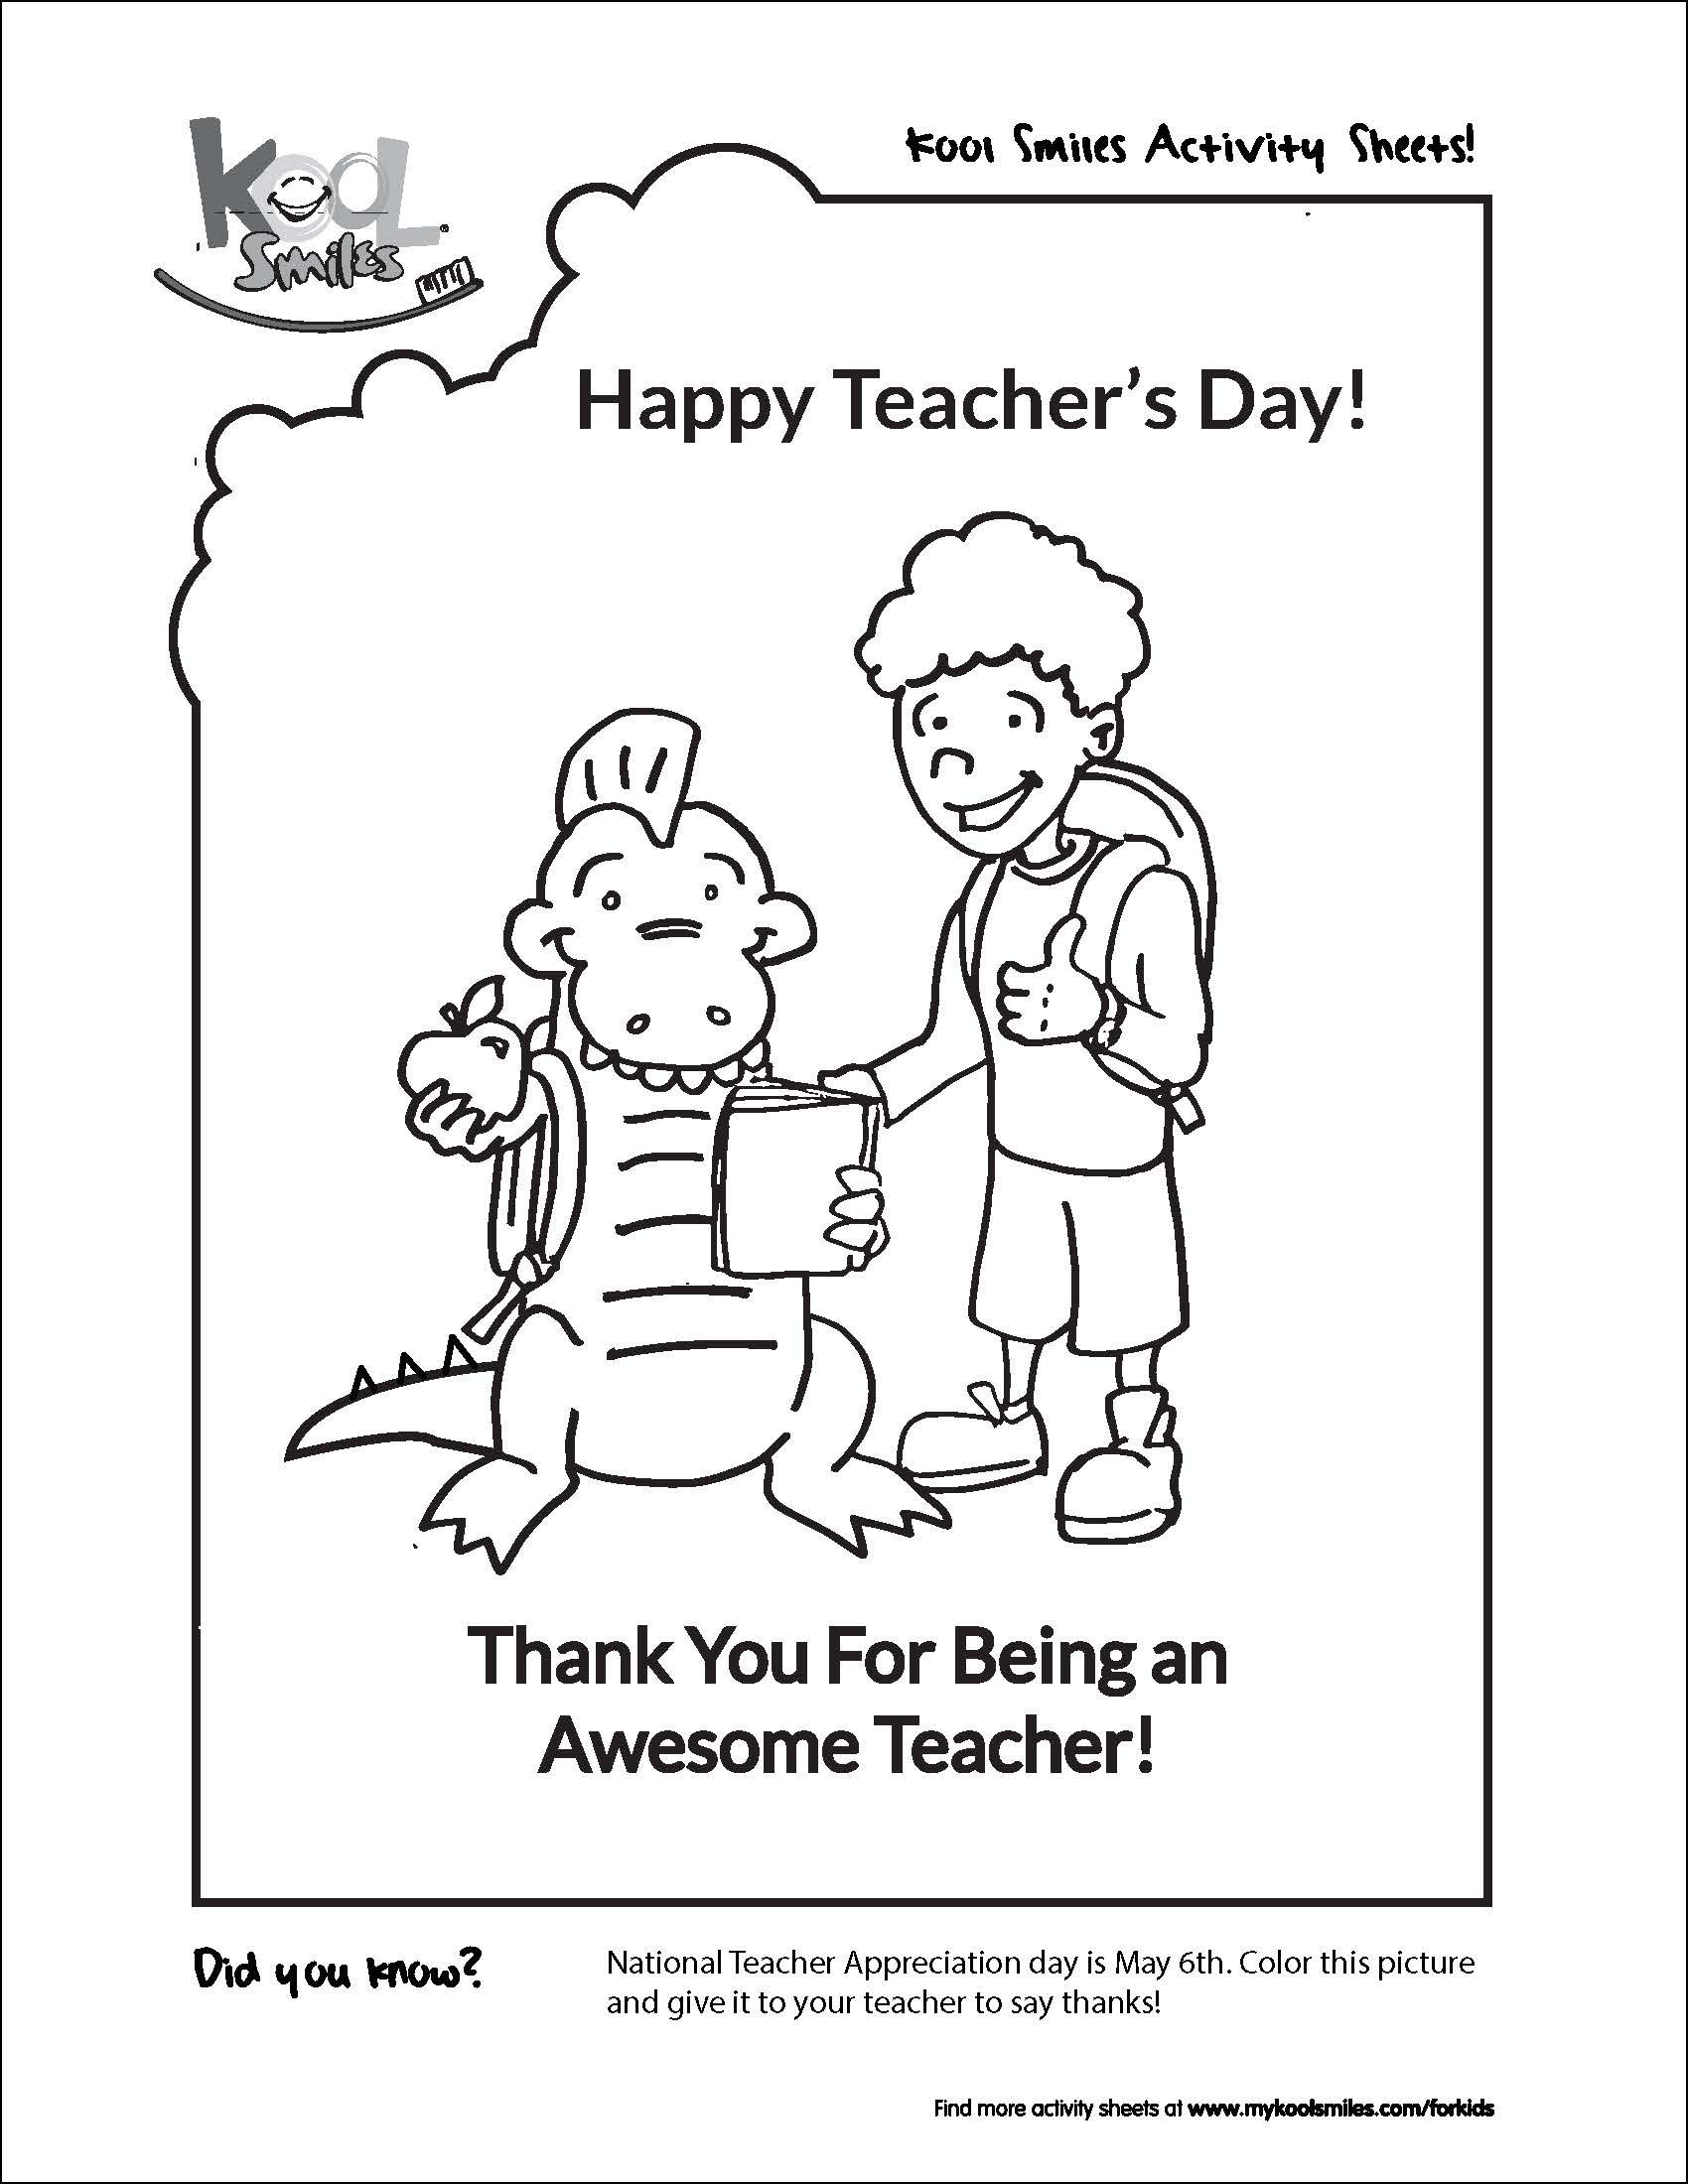 Celebrate National Teacher's Day with this fun activity